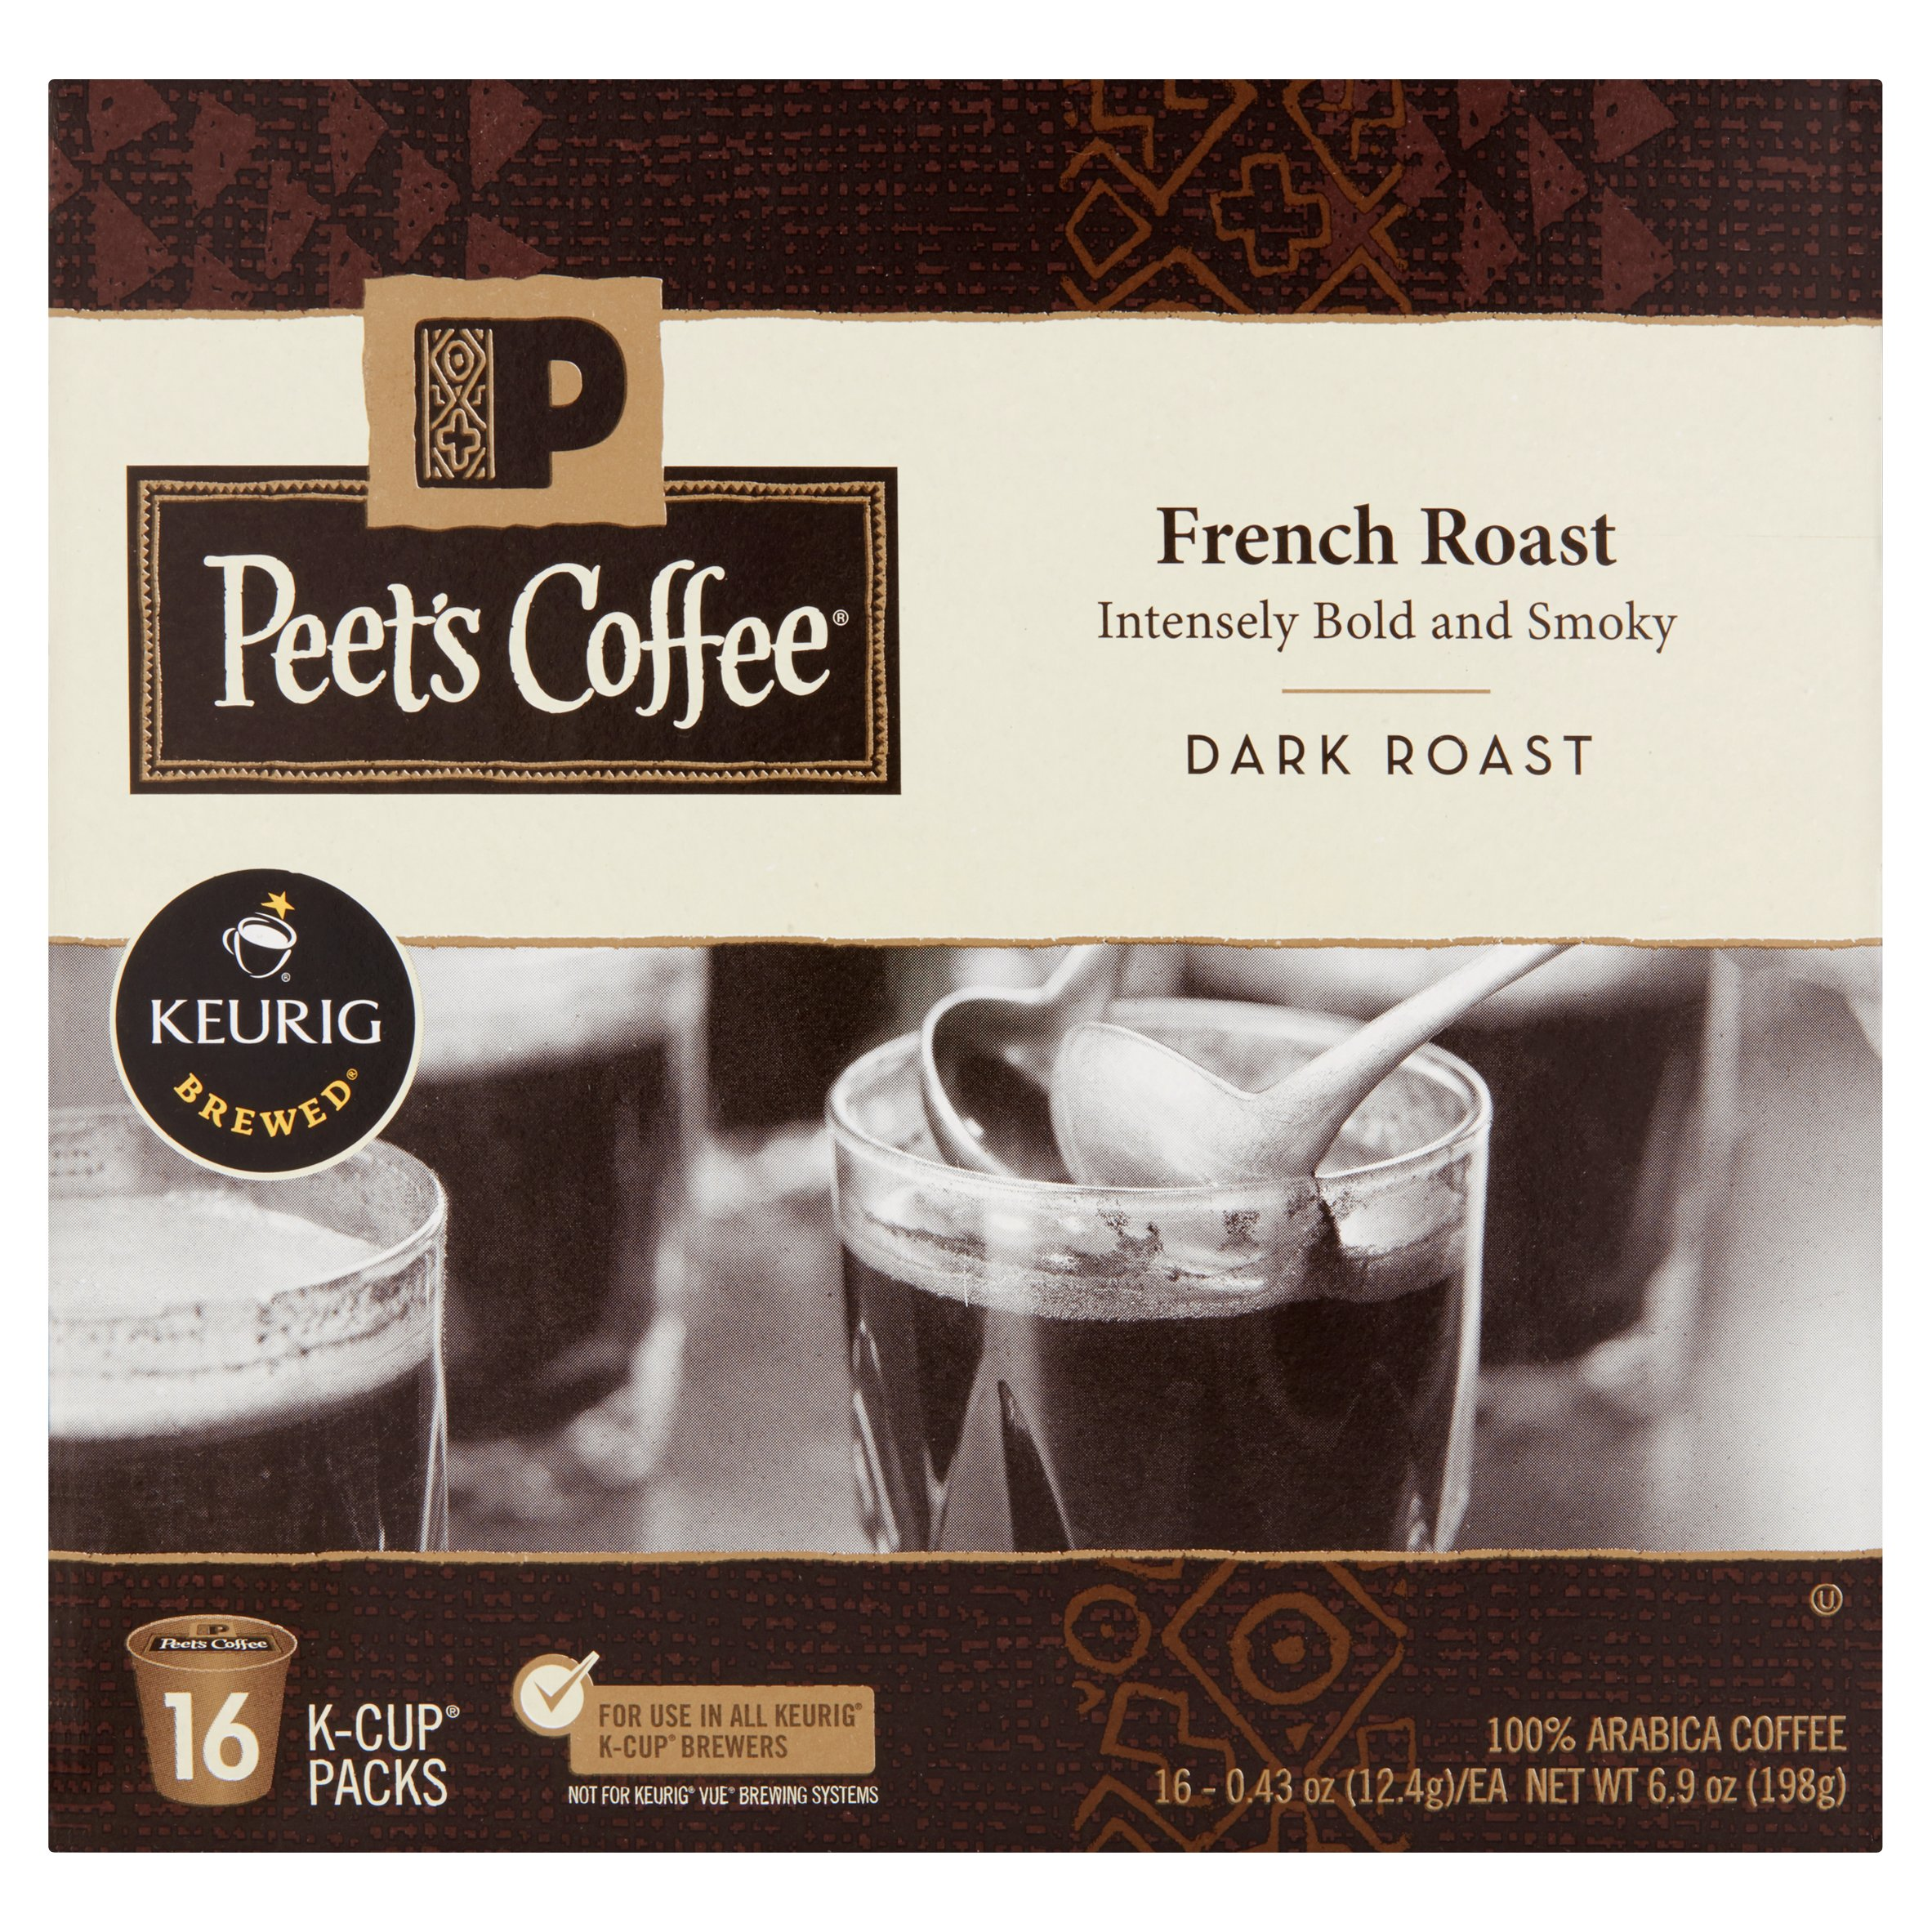 Keurig Brewed Peet's Coffee French Roast 100% Arabica Coffee, 0.43 oz, 16 count